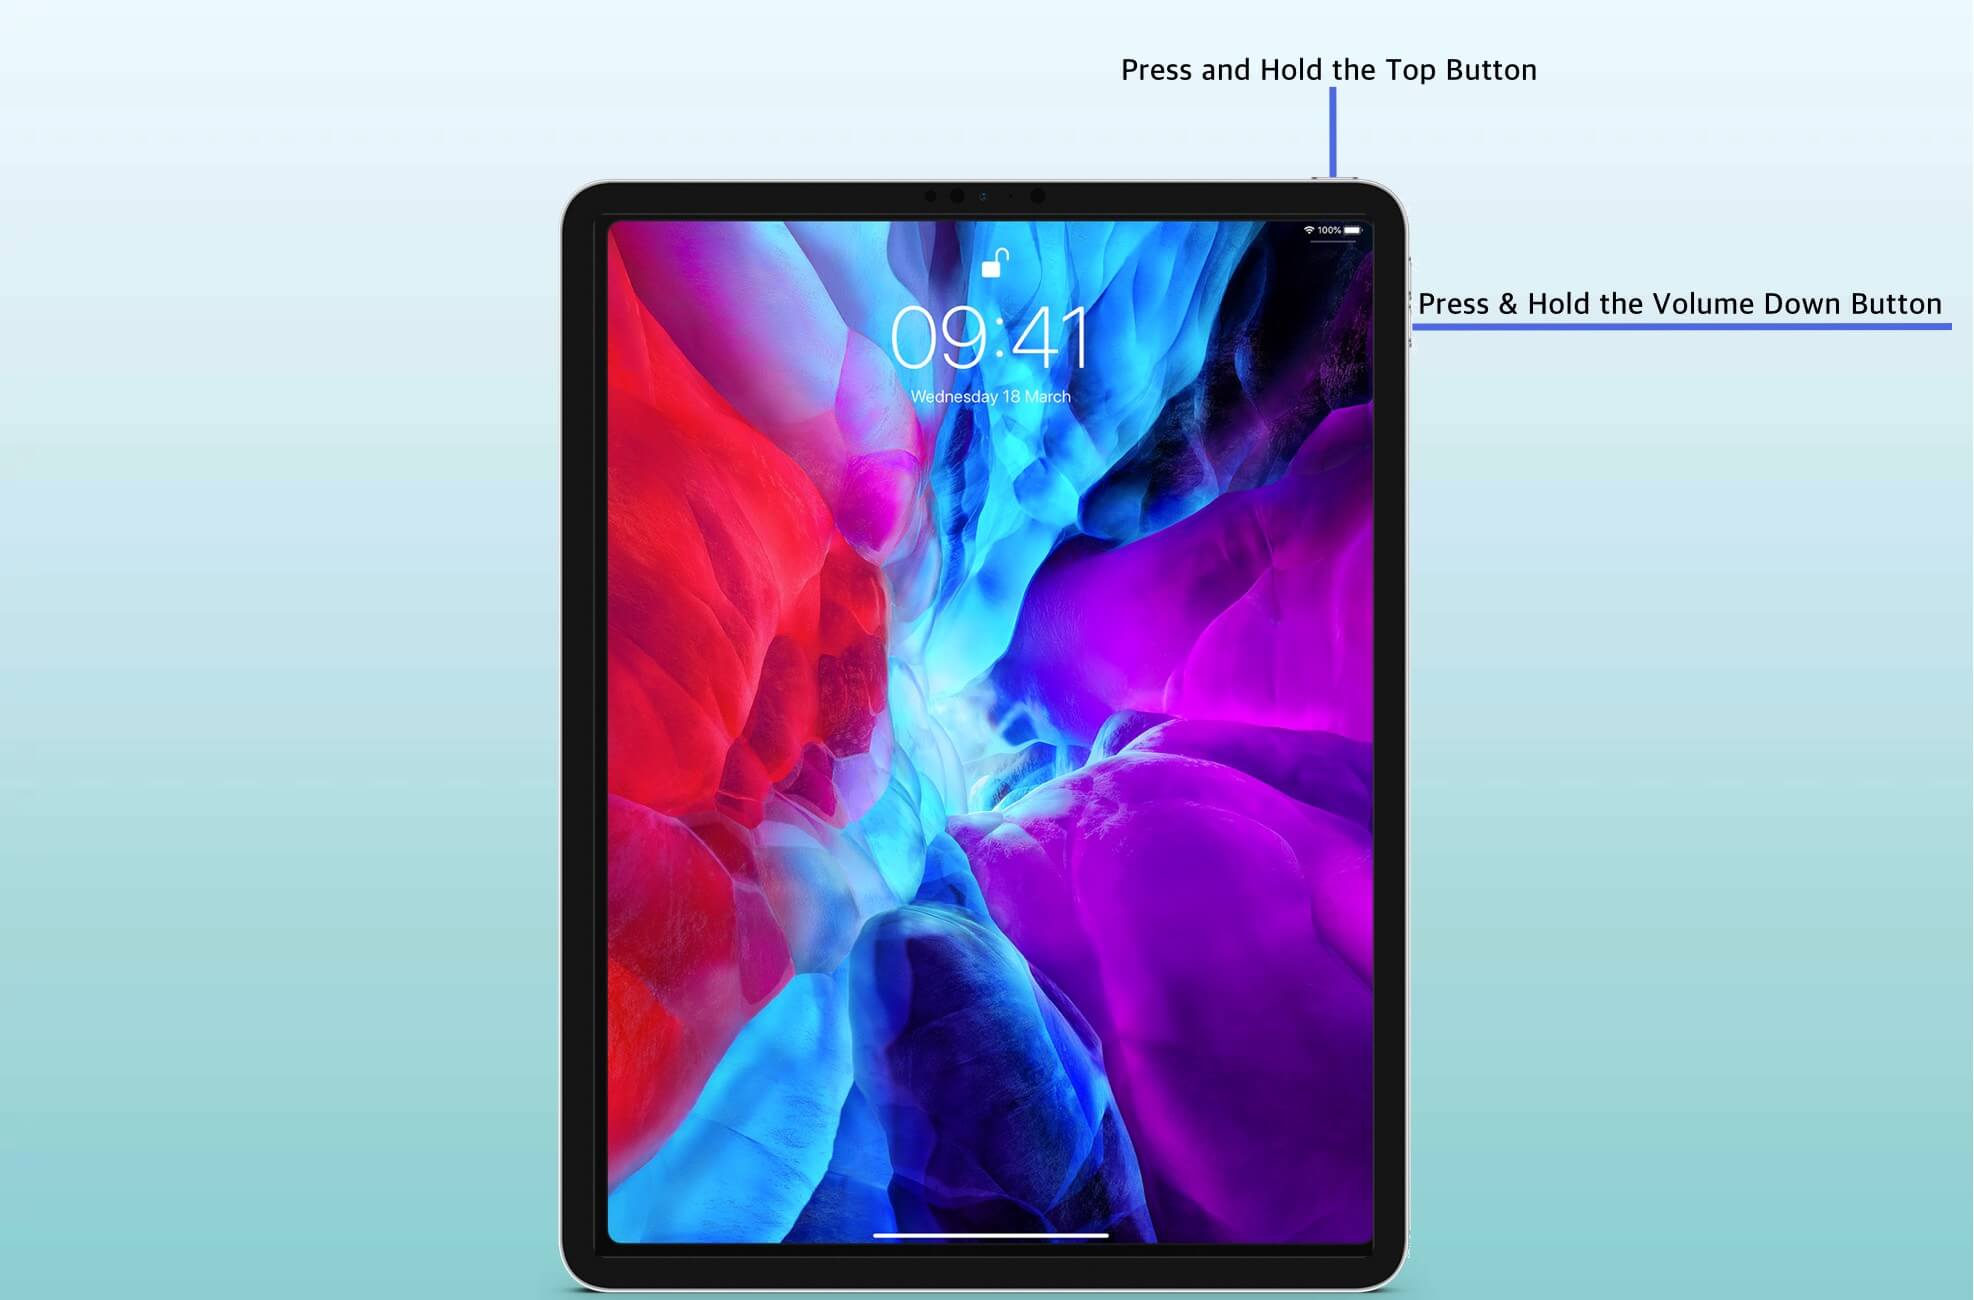 Press and Hold Top Button and Volume Down Button on iPad That has Face ID